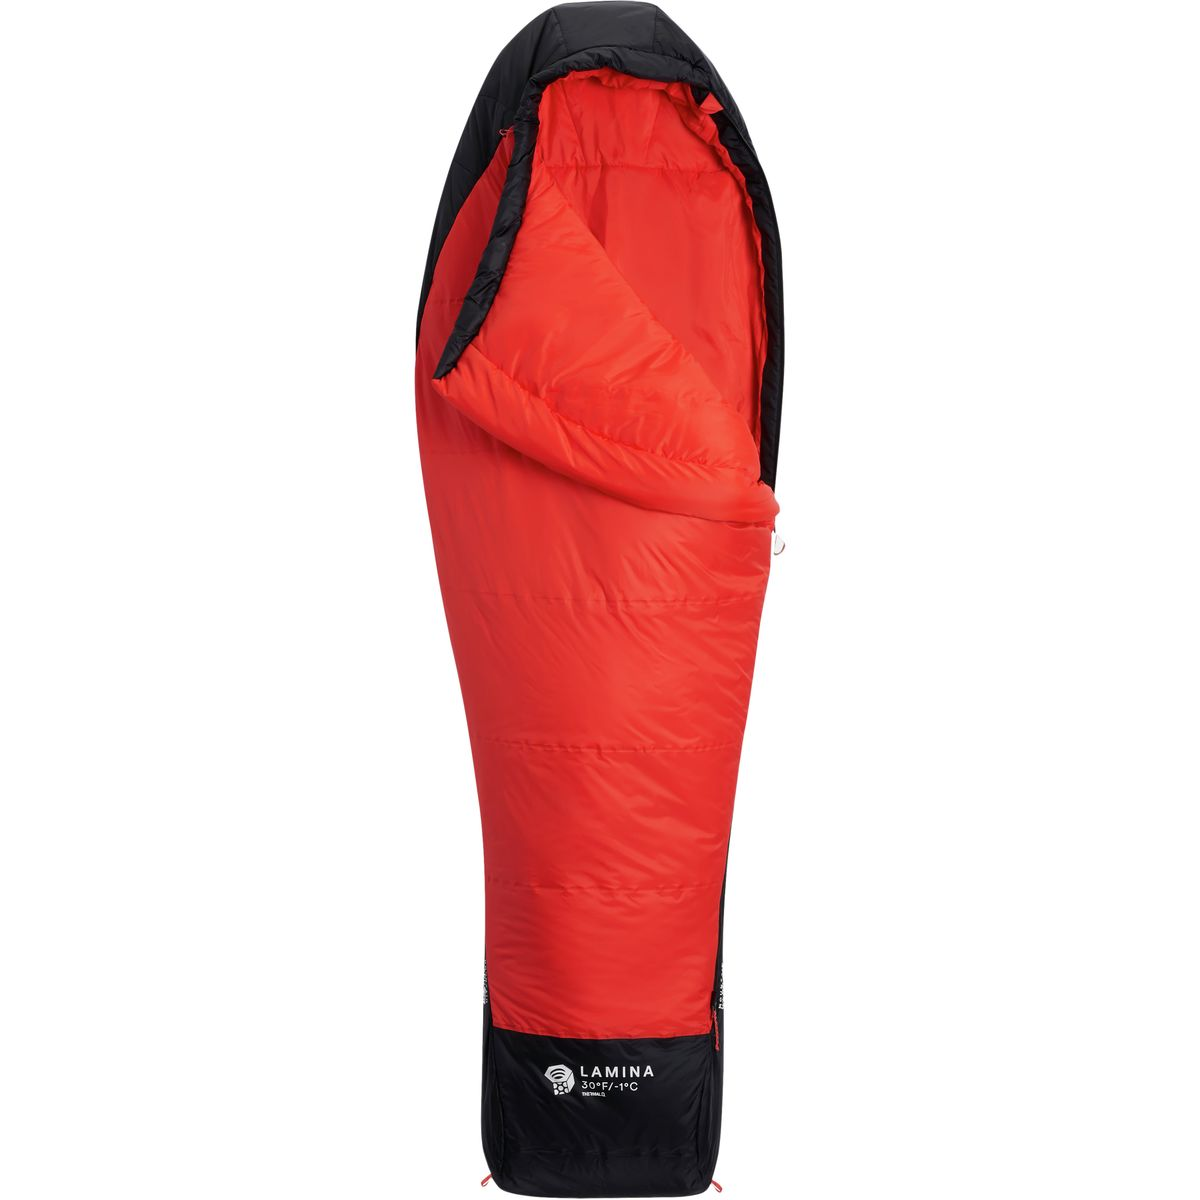 3-Season Synthetic Sleeping Bags